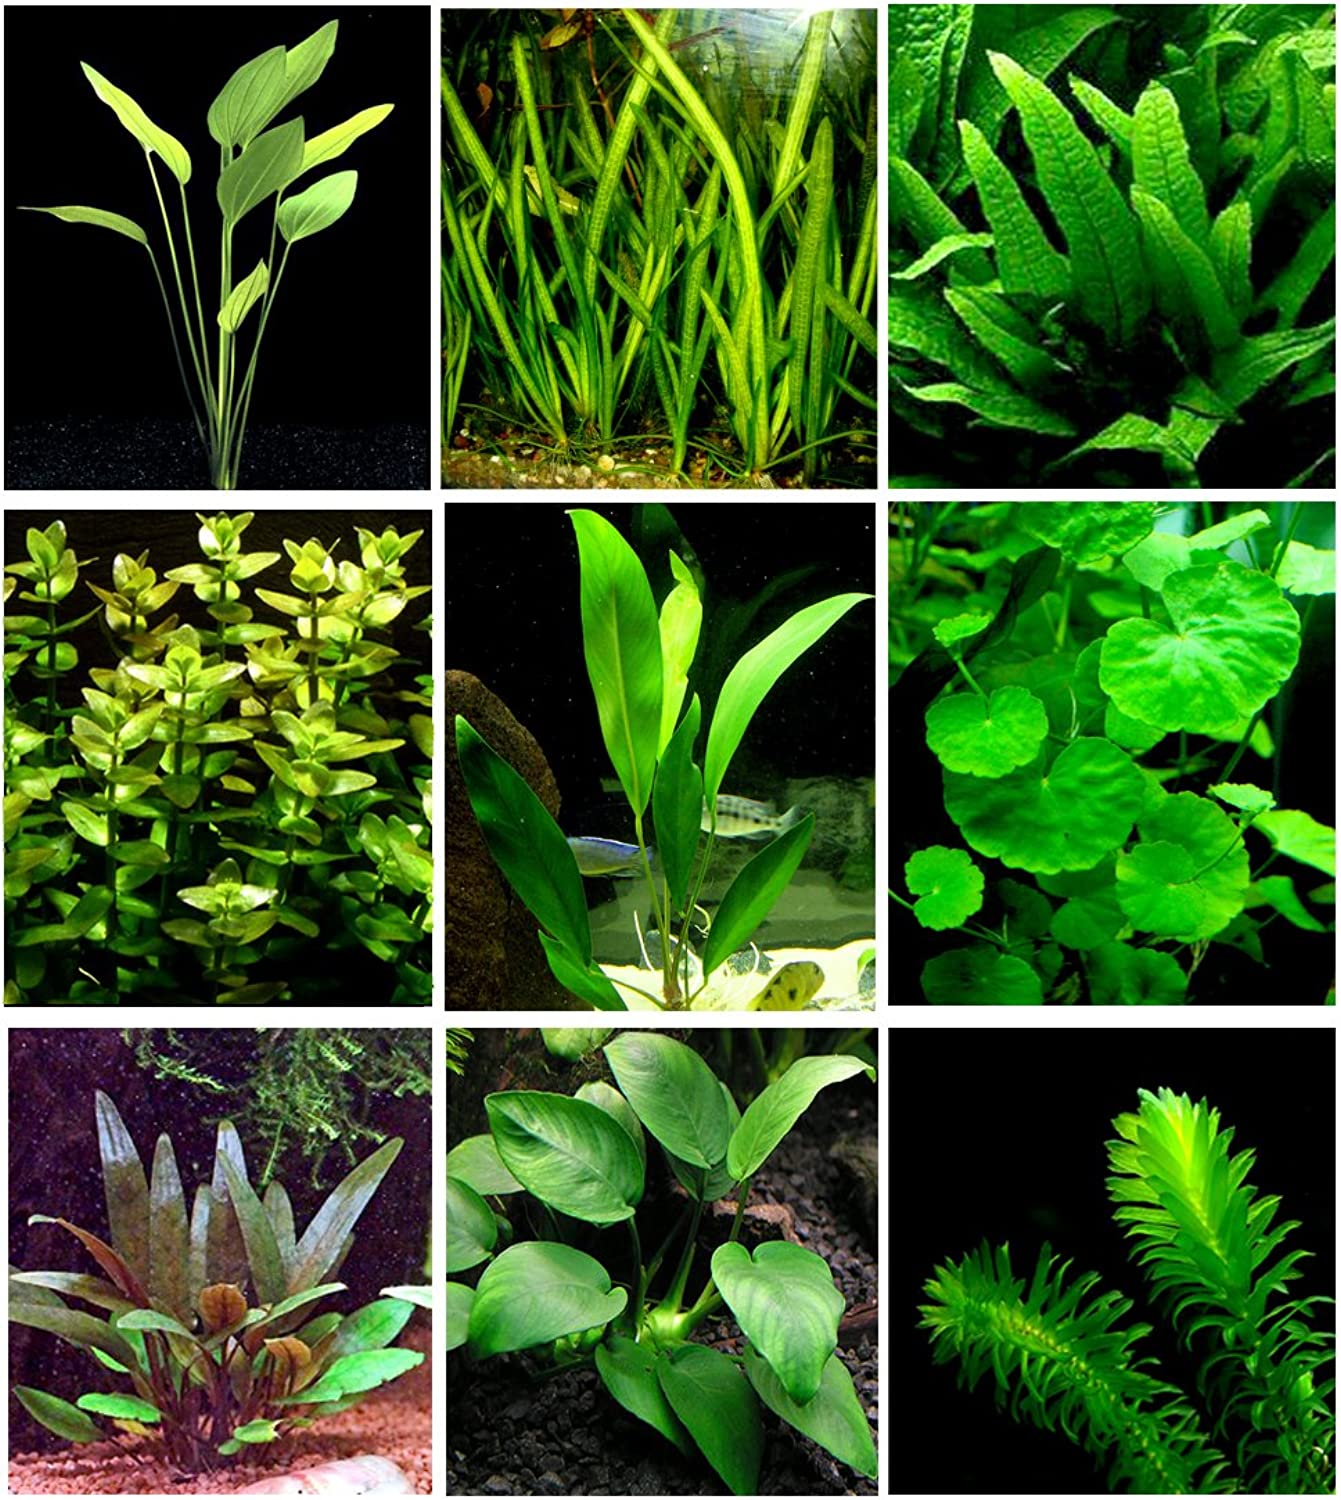 25 Live Aquarium Plants 9 Different Kinds  Amazon Swords, Anubias, Java Fern, Ludwigia and Much More  Great Plant Sampler for 1015 gal Tanks